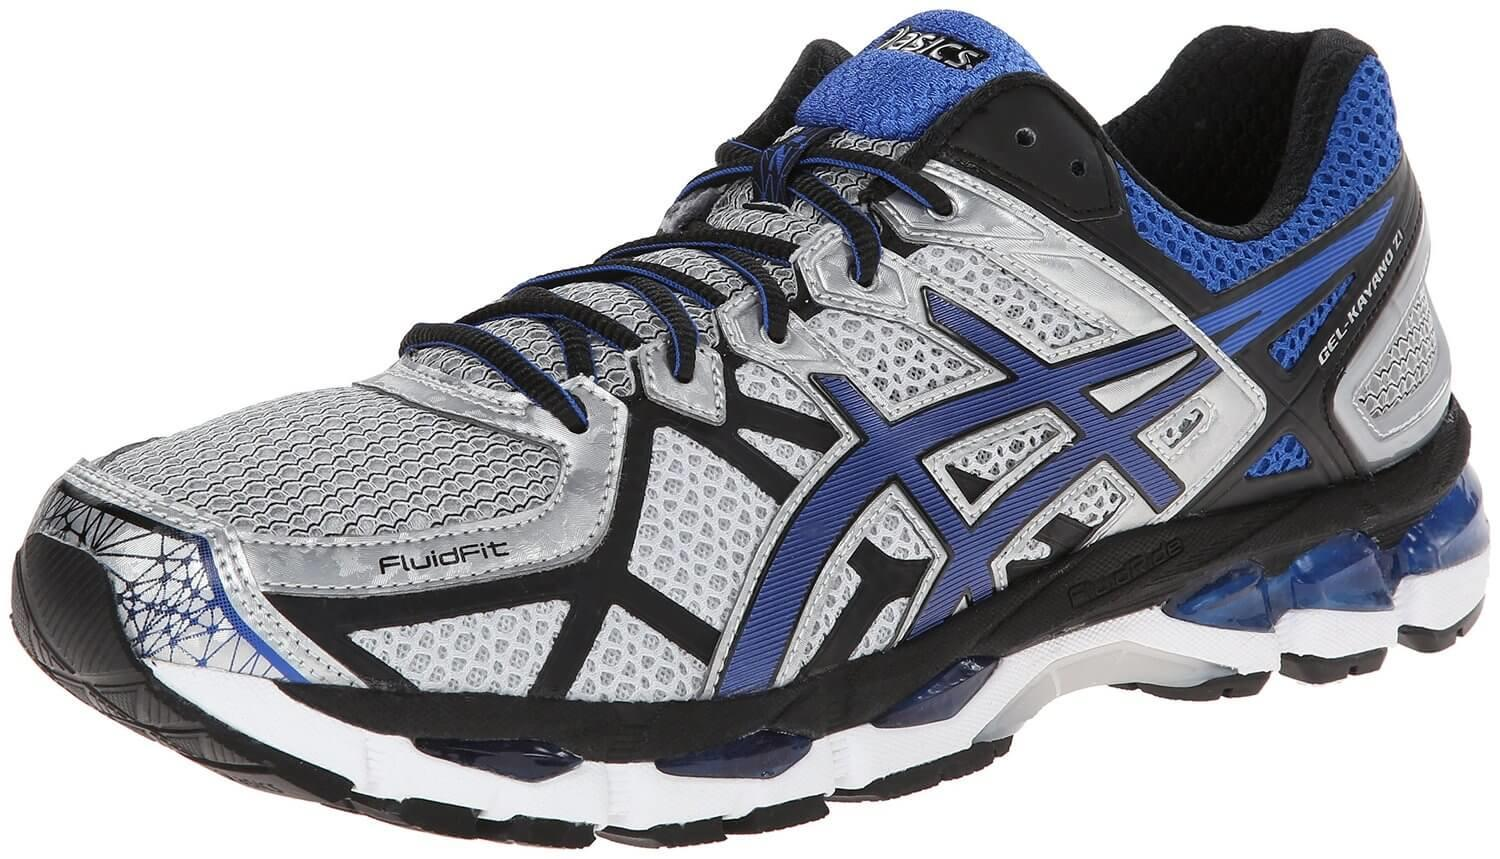 The Asics Gel Kayano 21 provide high comfort and stability through its clever design.